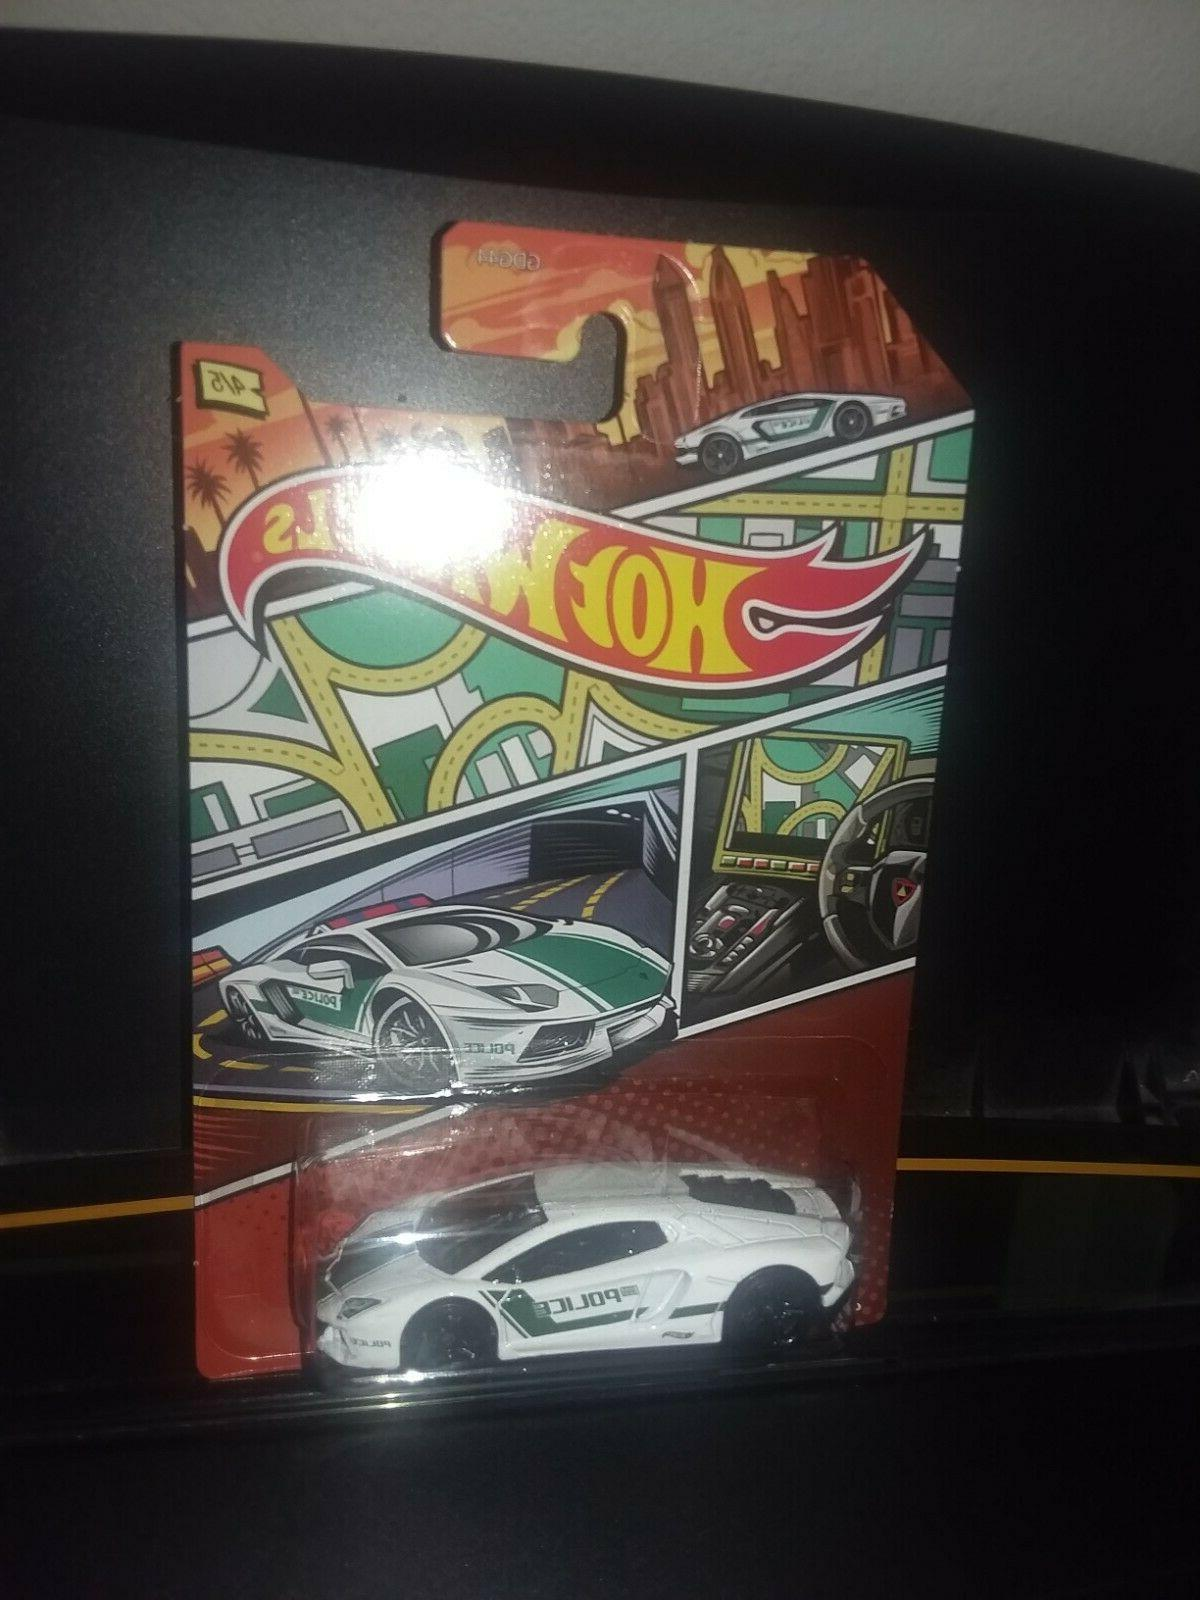 HOT WHEELS 2020 ART POLICE COMPLETE OF 5, WALMART EXCLUSIVE, VHTF!